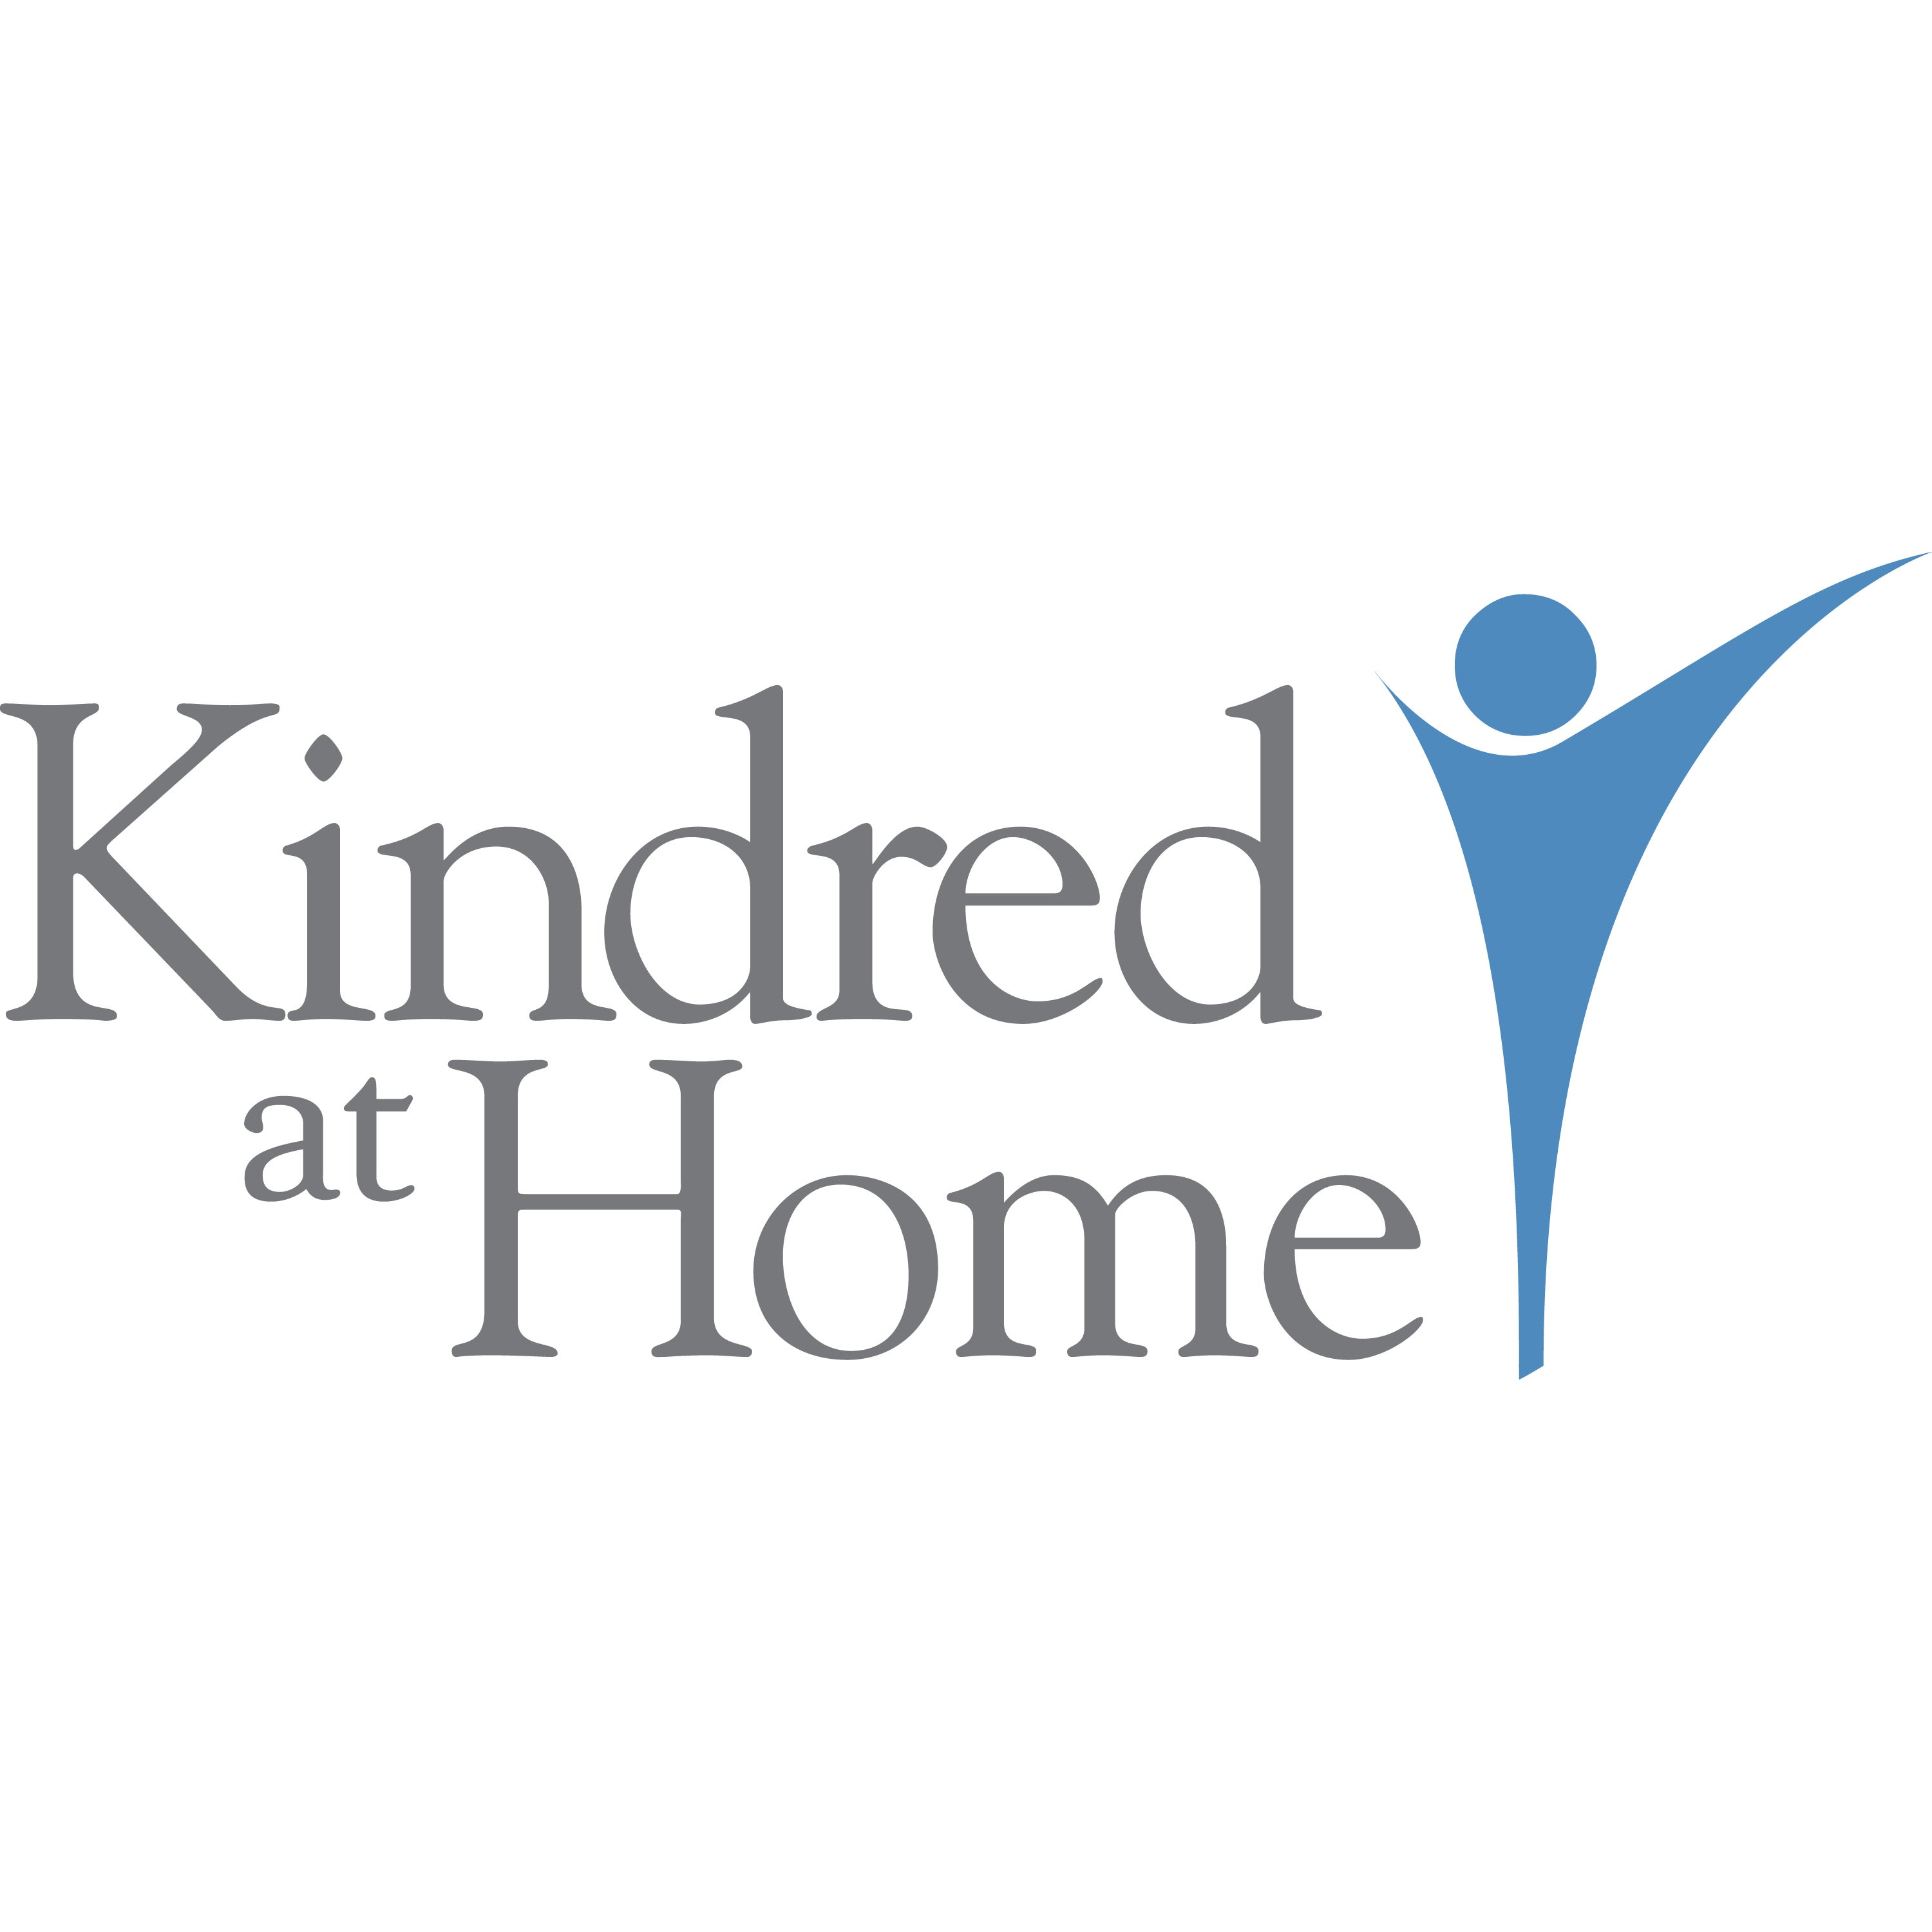 KINDRED AT HOME,